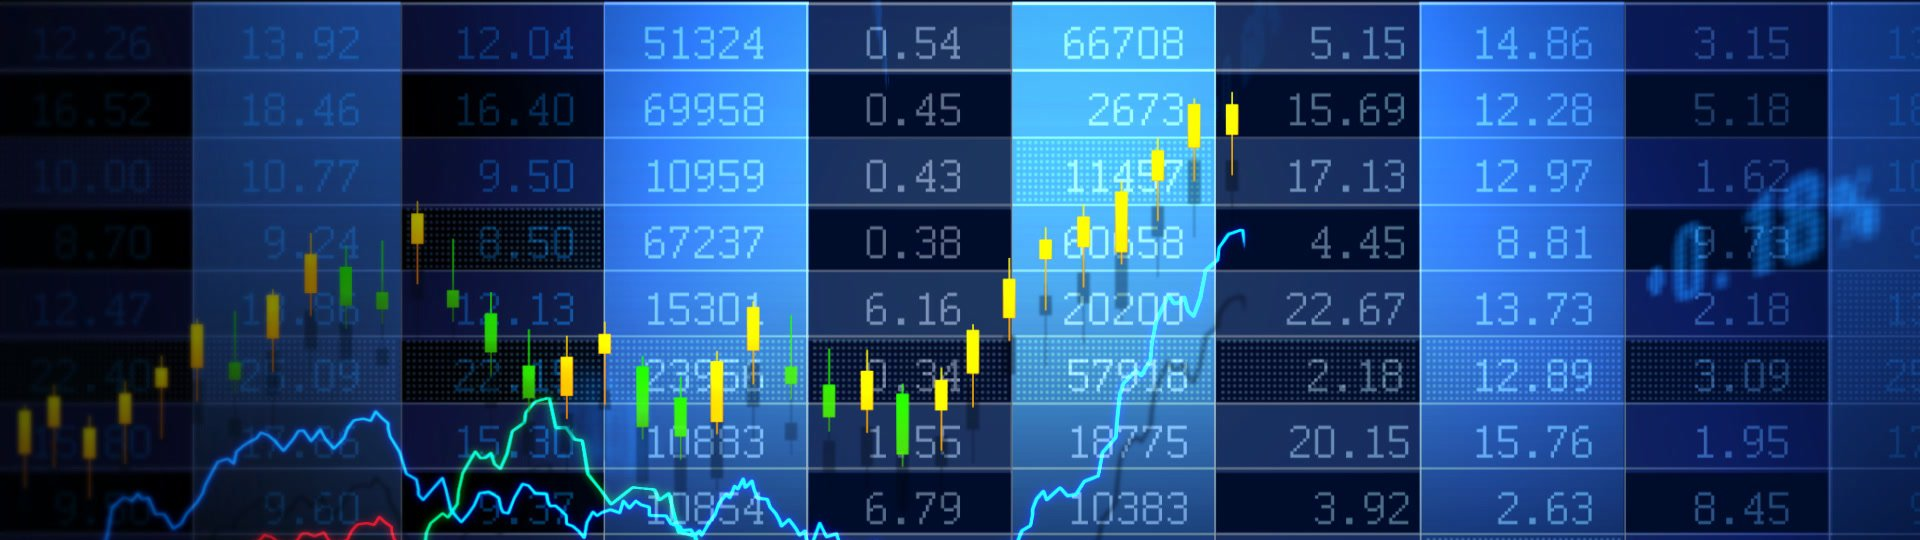 Stock Market_073 | Stock market trend of animation. Seamless loop. HD1080. - ID:17113